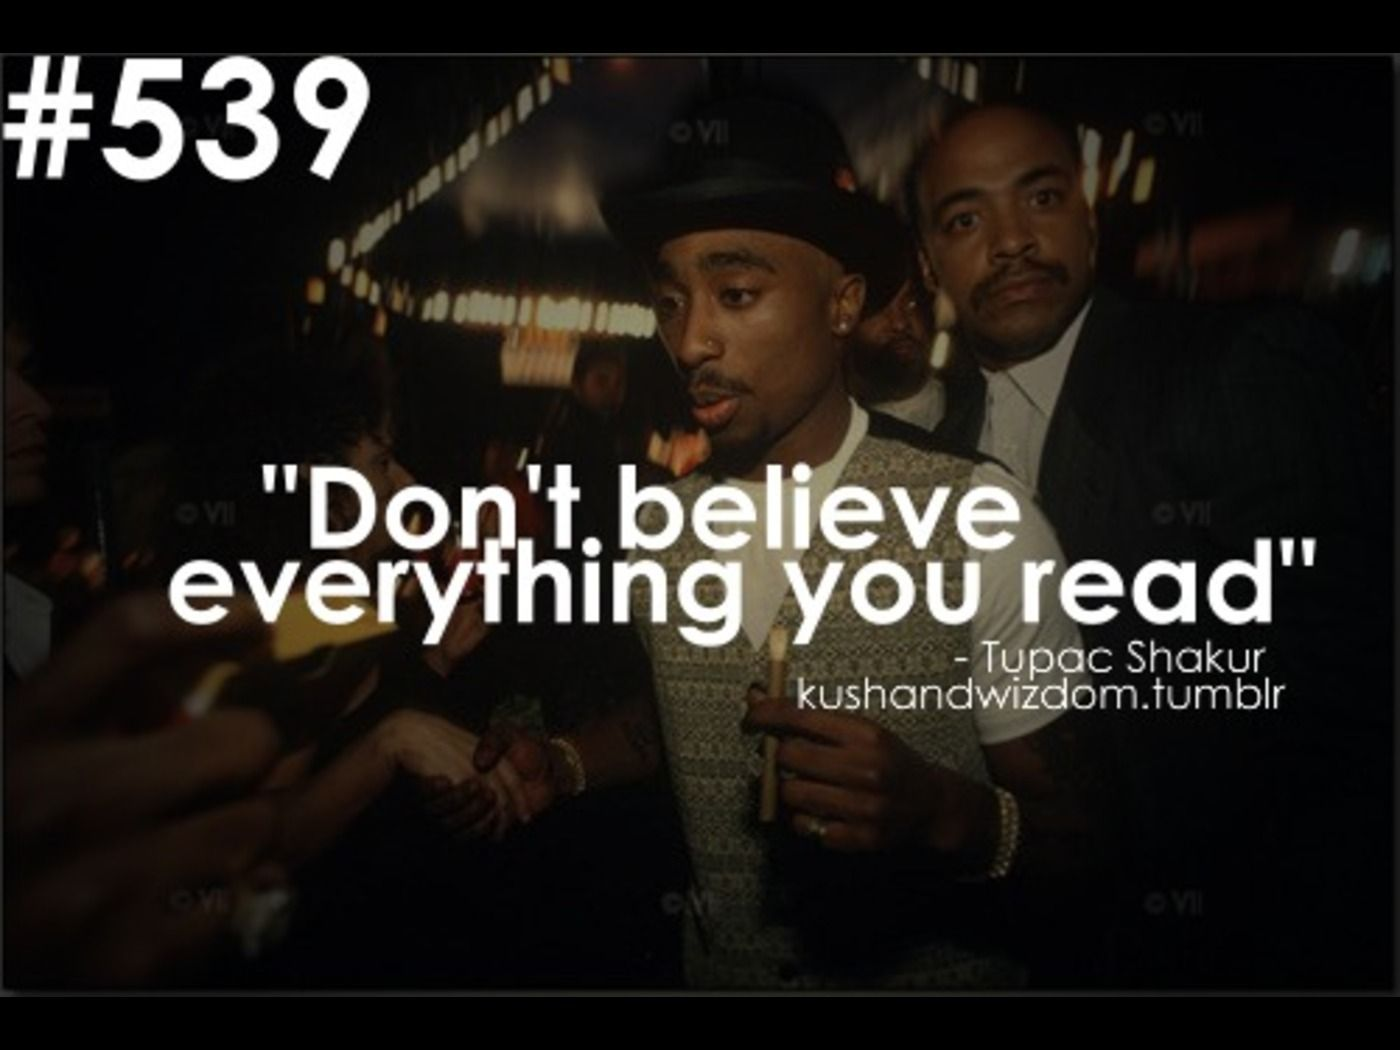 Tupac God Quotes Tumblr Cars 2 Dvd Cover 2011 Tupac Shakur Quotes About God  Macaulay Picture